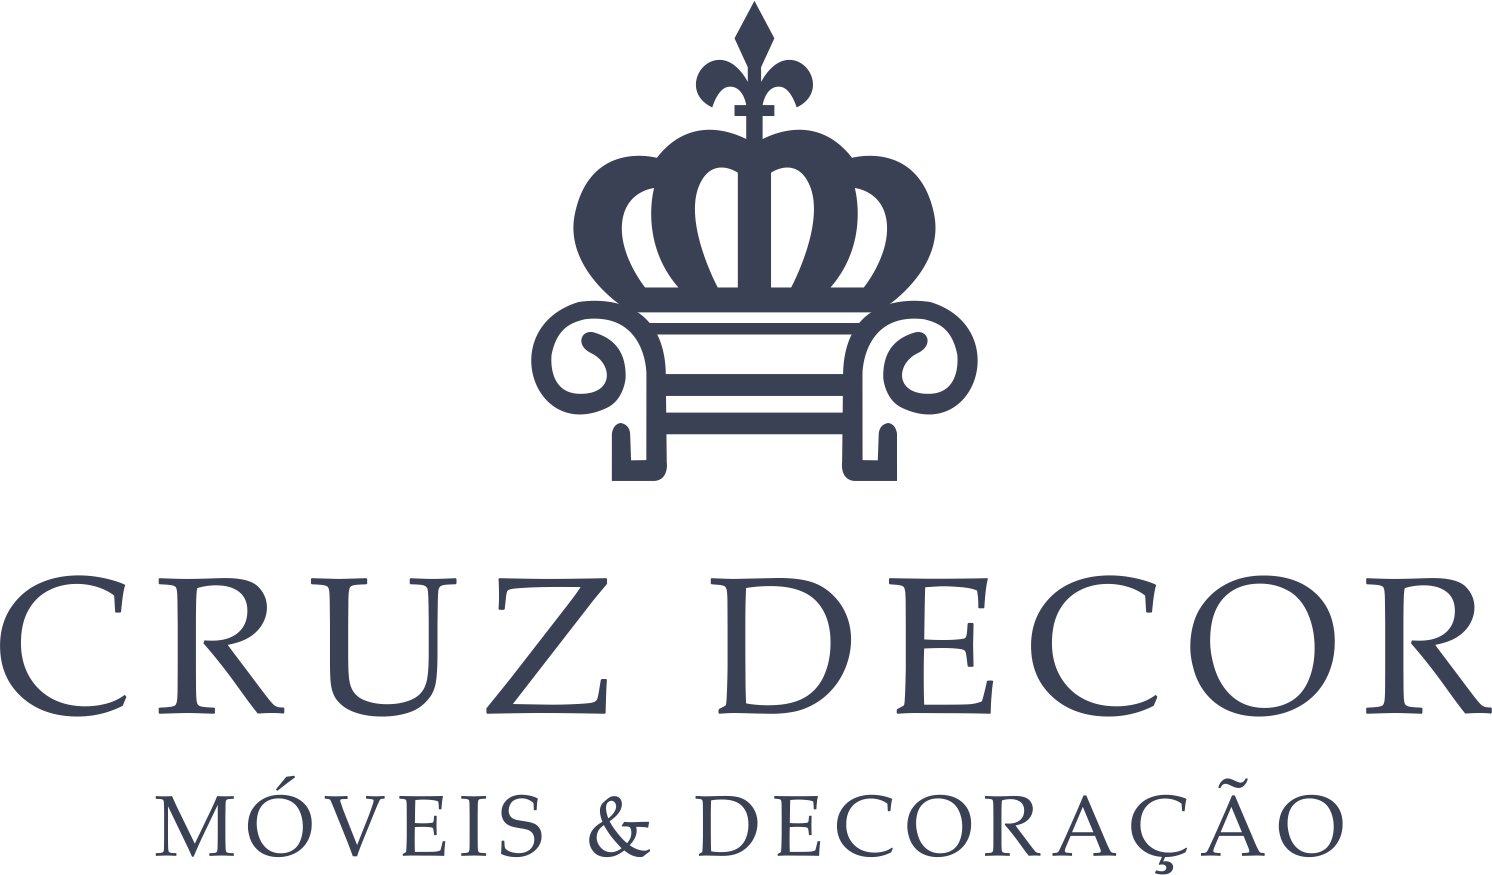 Cruz Decor